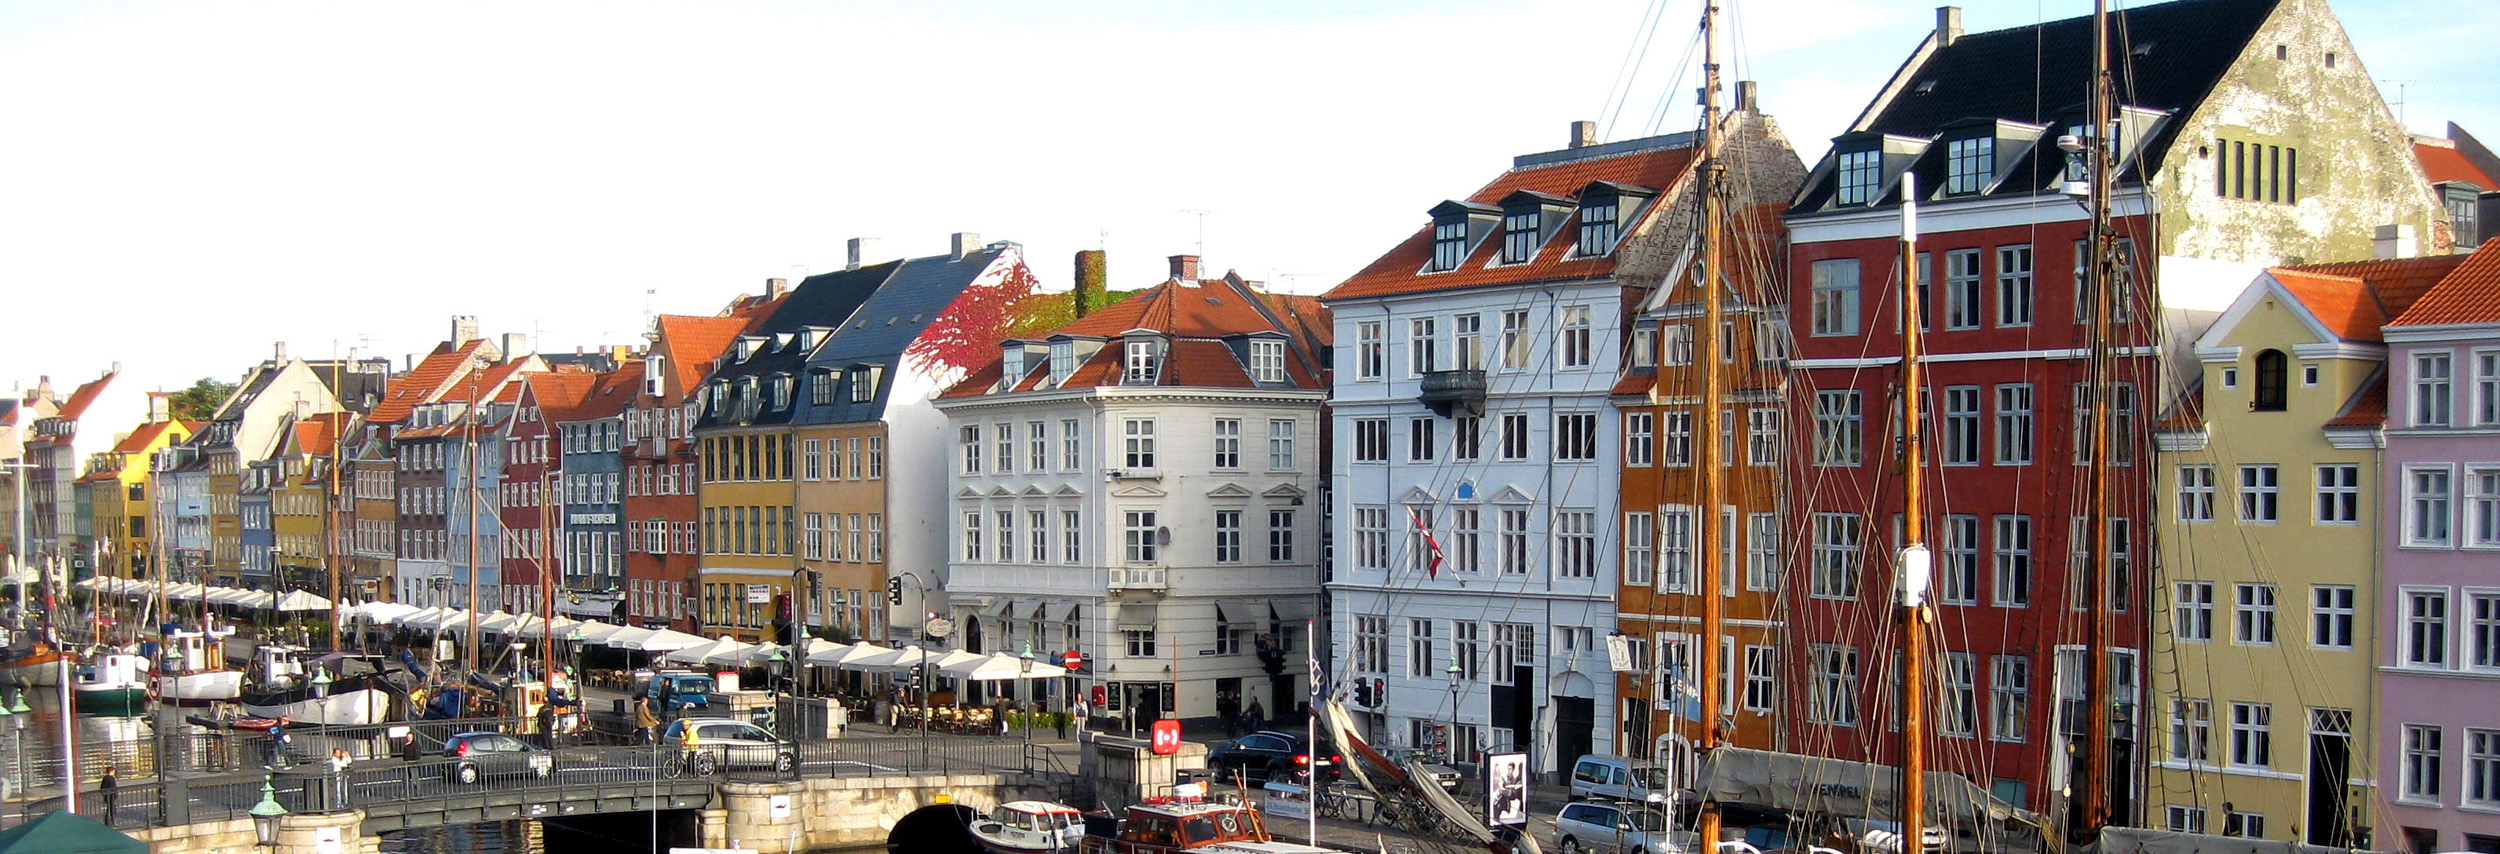 Photo of the old houses in Nyhavn where Hans Christian Andersen once lived. The colour of have a heart graphics mirror those of the old houses.